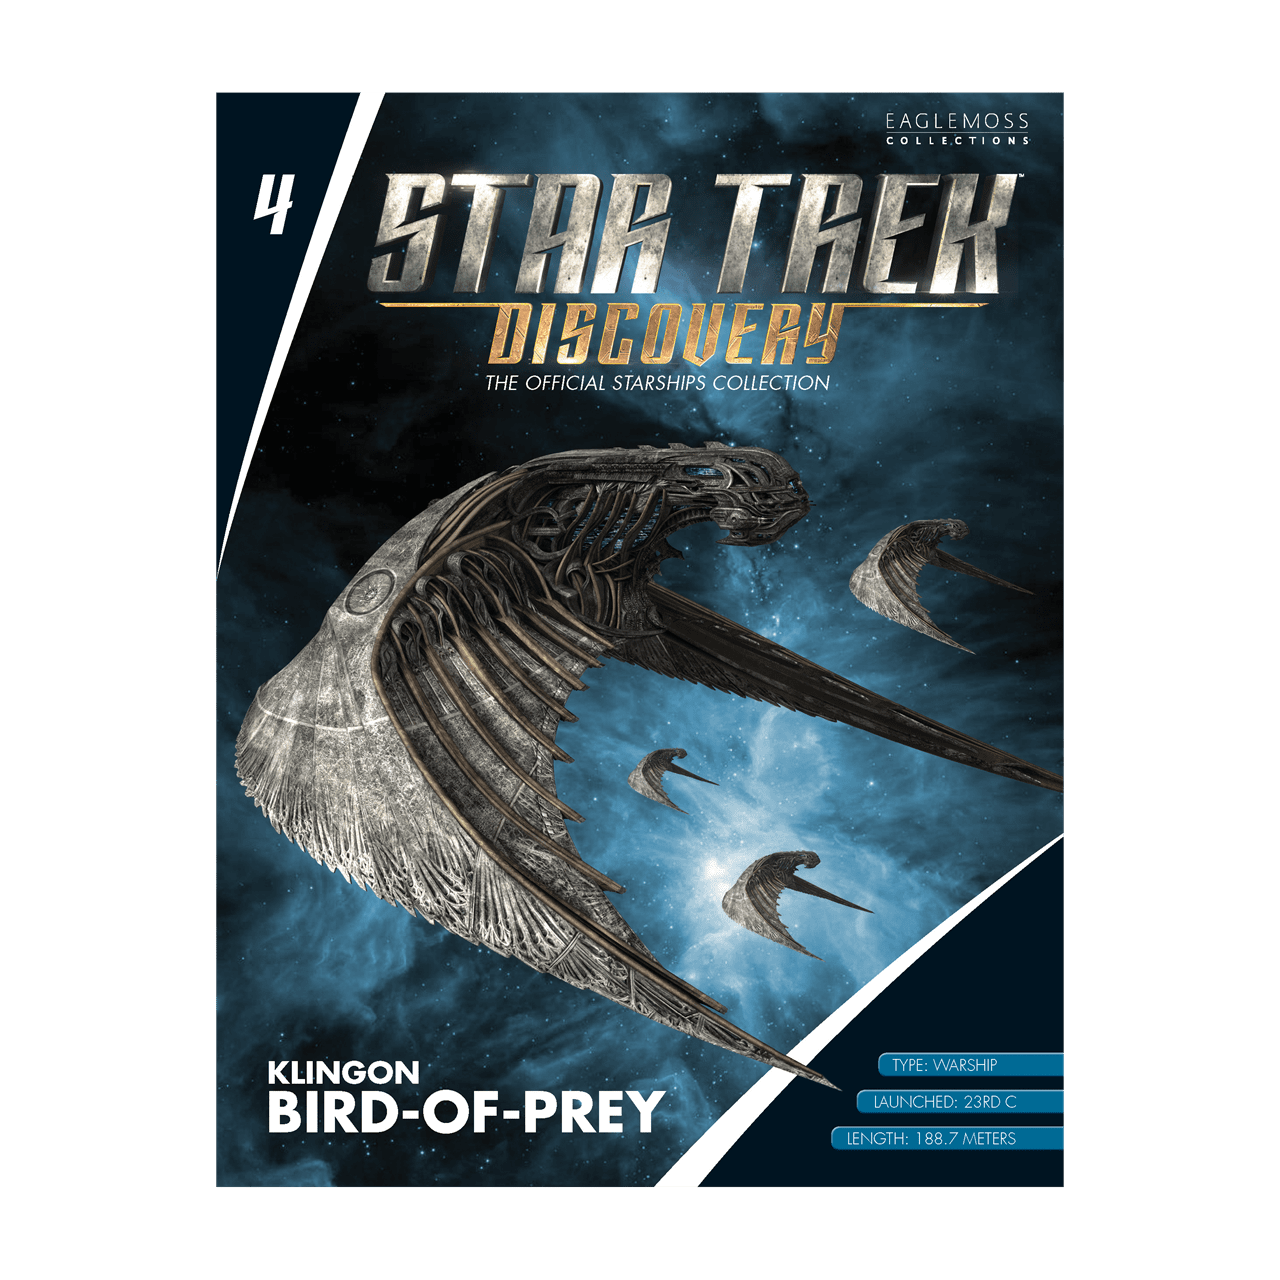 Star Trek Discovery: Klingon Bird-of-Prey Starship Hero Collector - 3